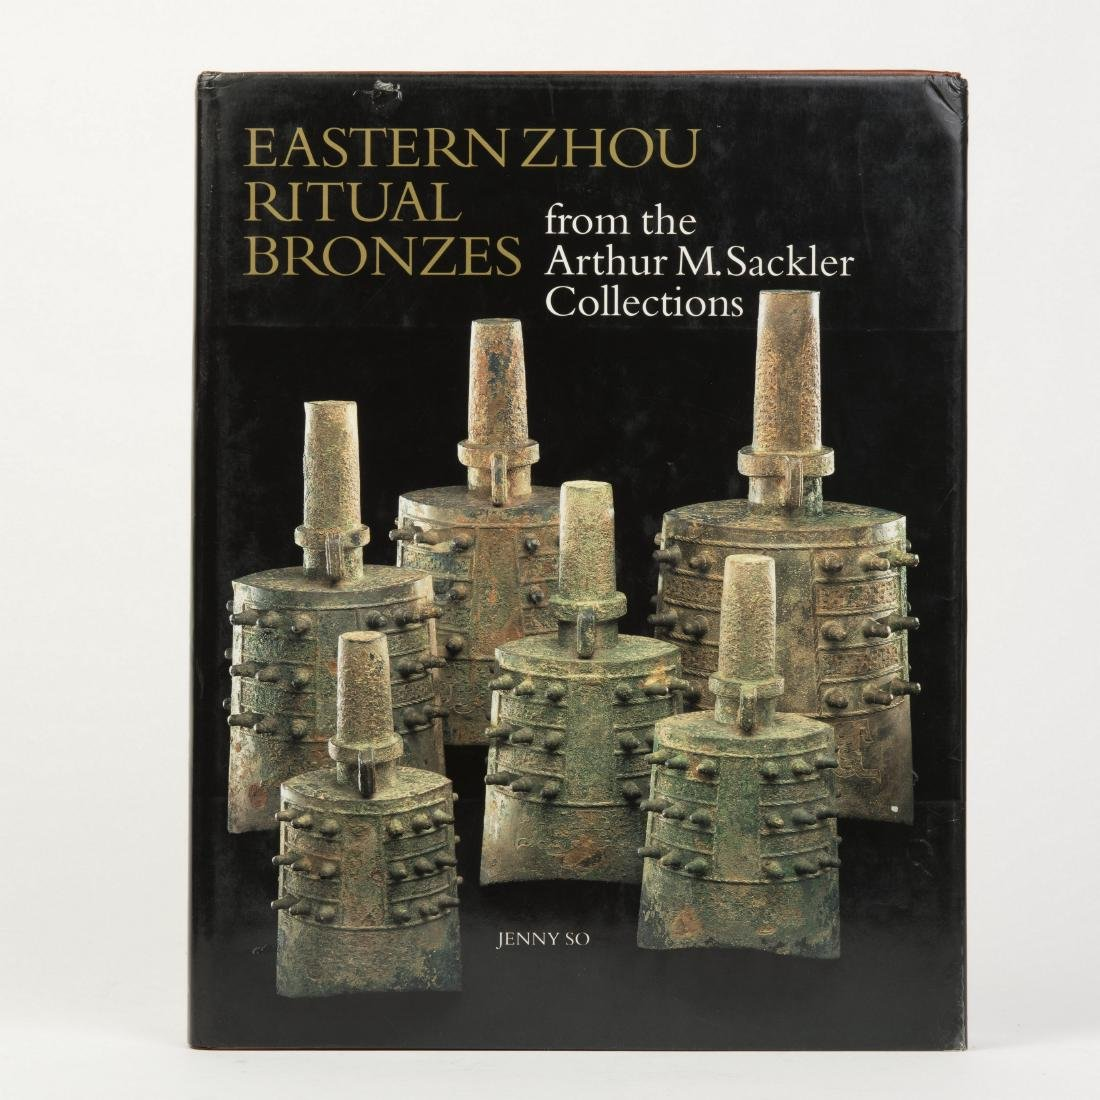 A BOOK OF EASTERN ZHOU RITUAL BRONZES FROM THE ARTHUR